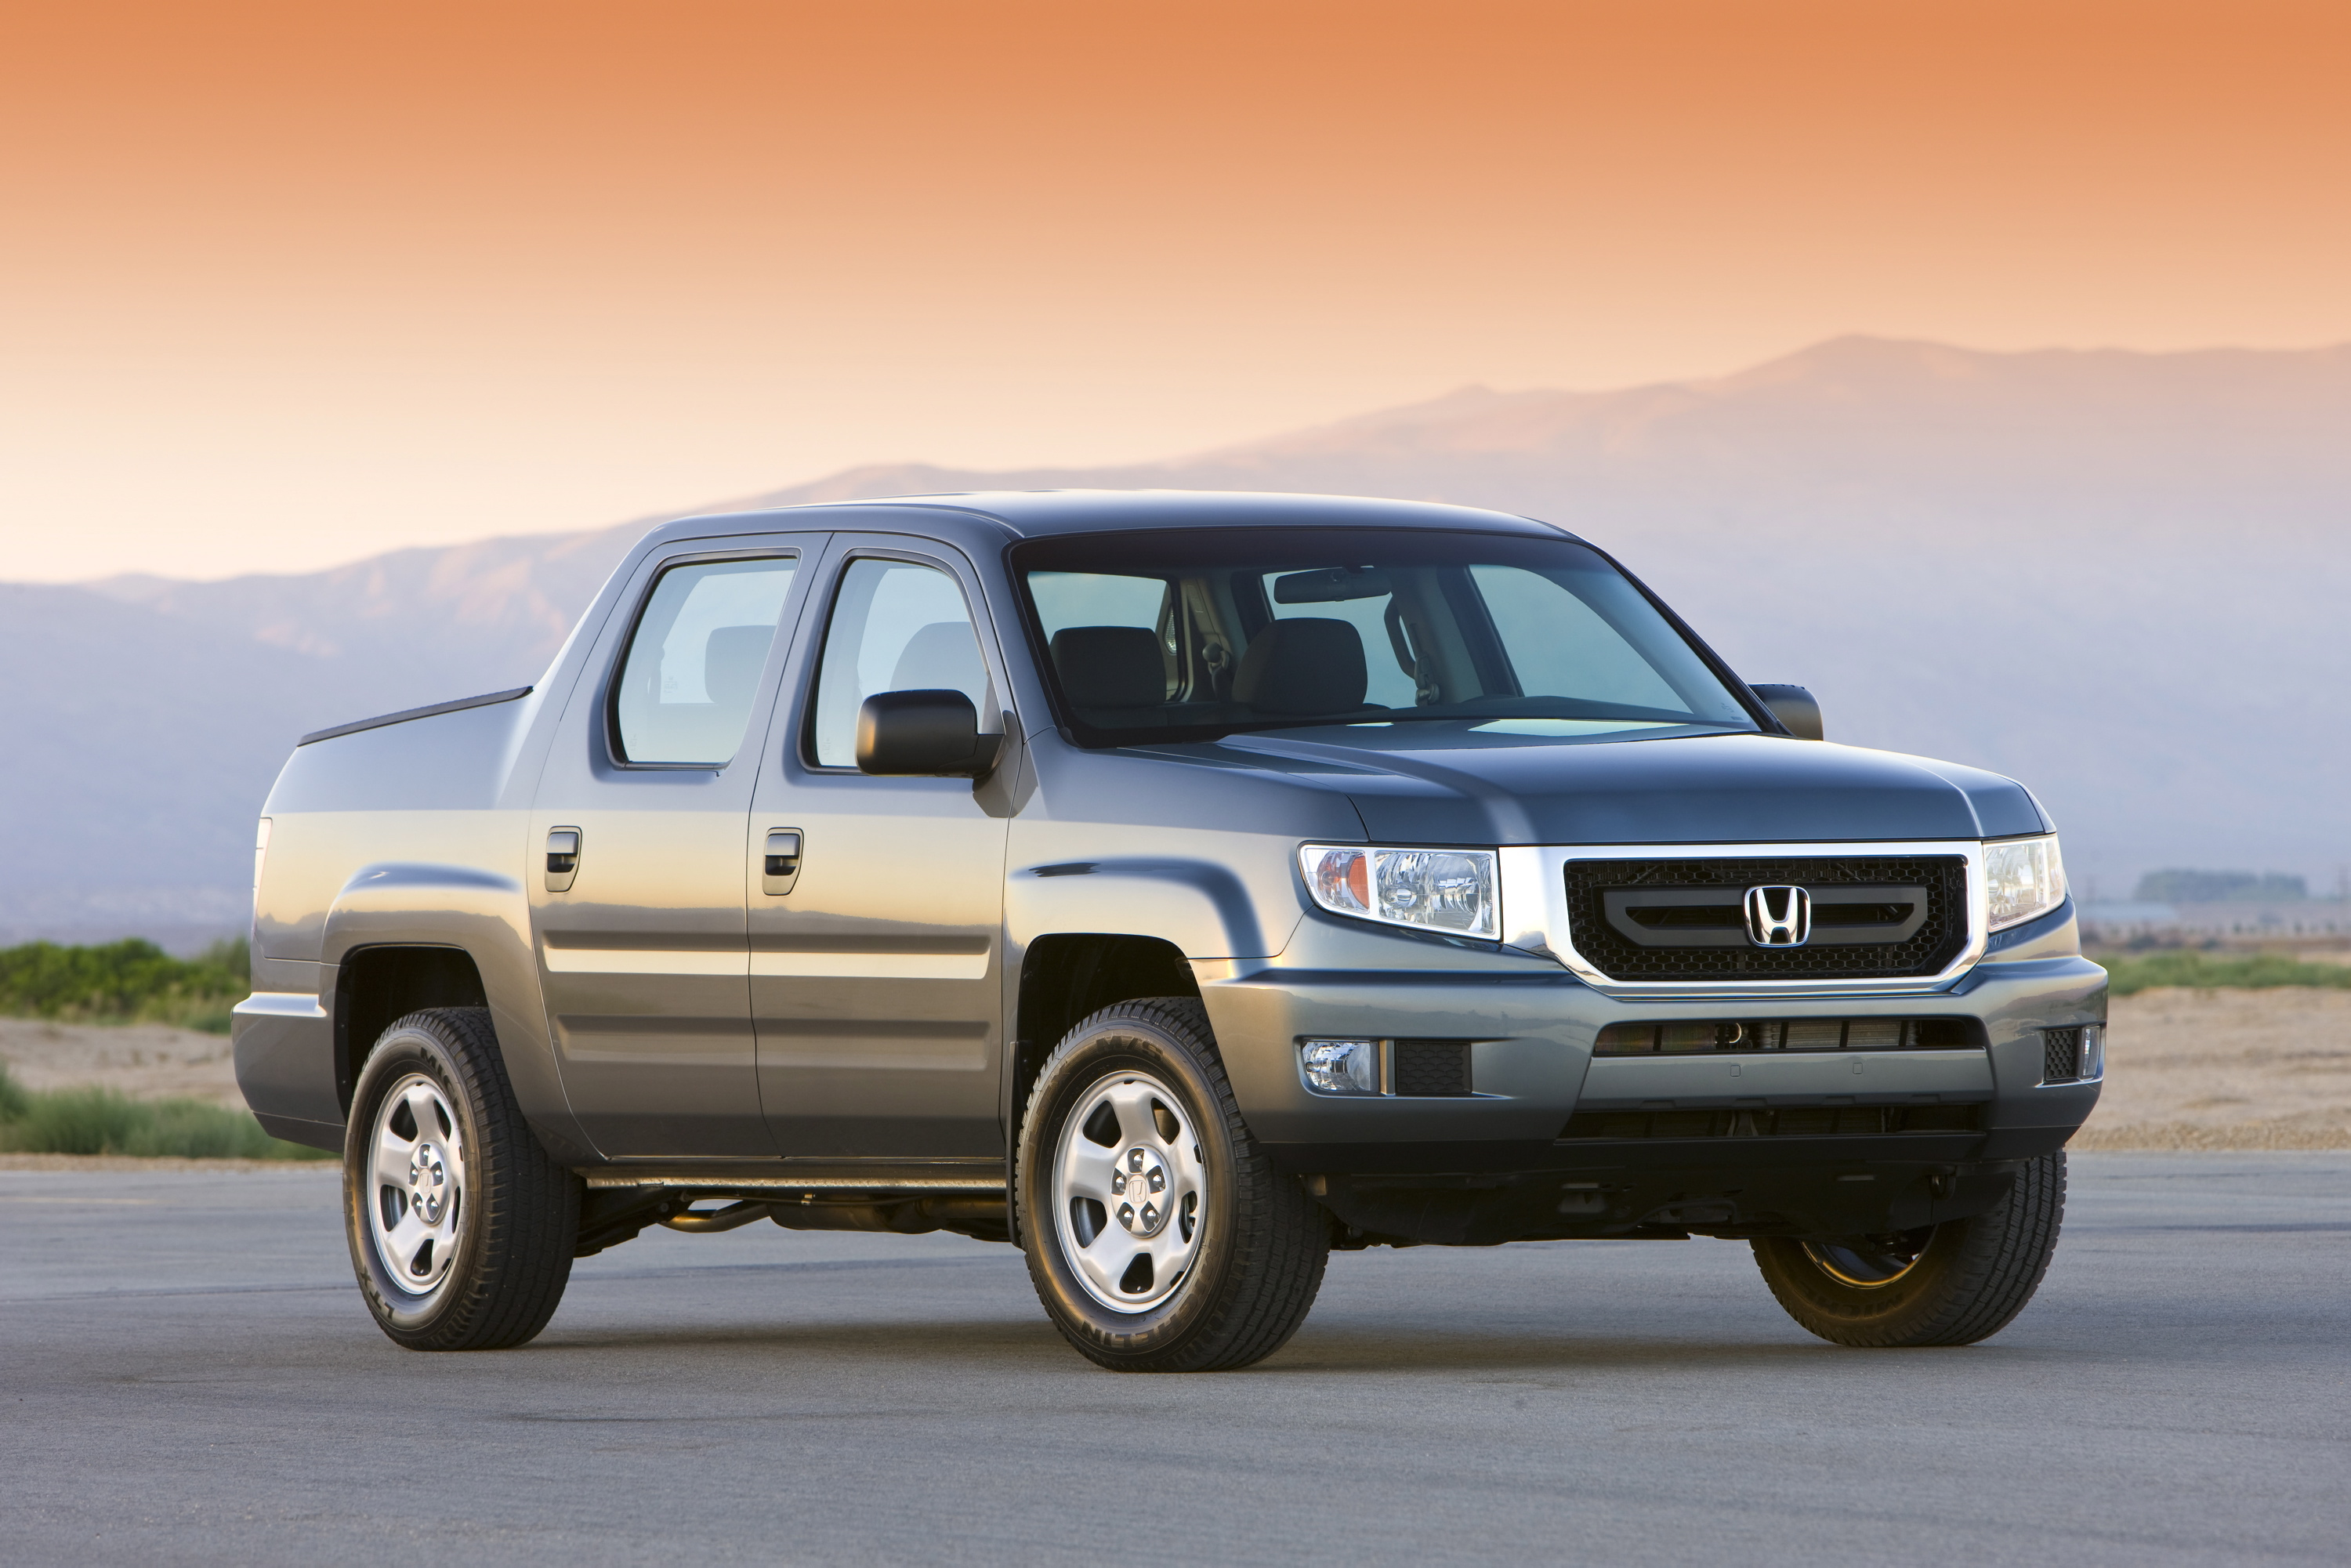 Honda Dealerships In Alabama >> Featured Trucks Honda Dealers Alabama